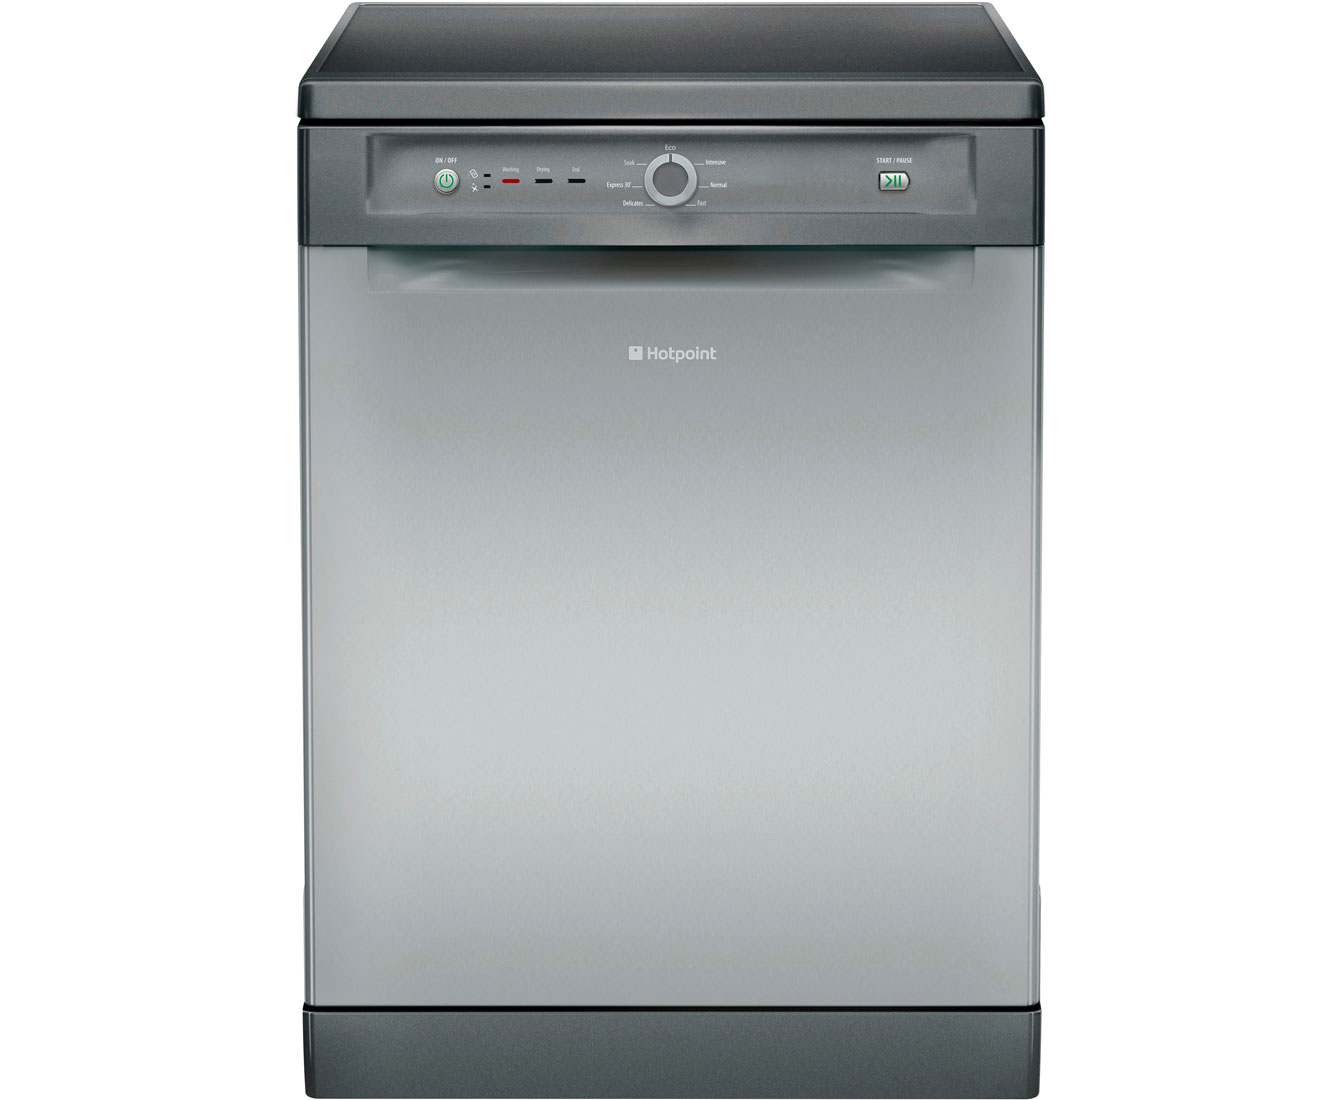 Hotpoint Style FDYB10011G Free Standing Dishwasher in Graphite